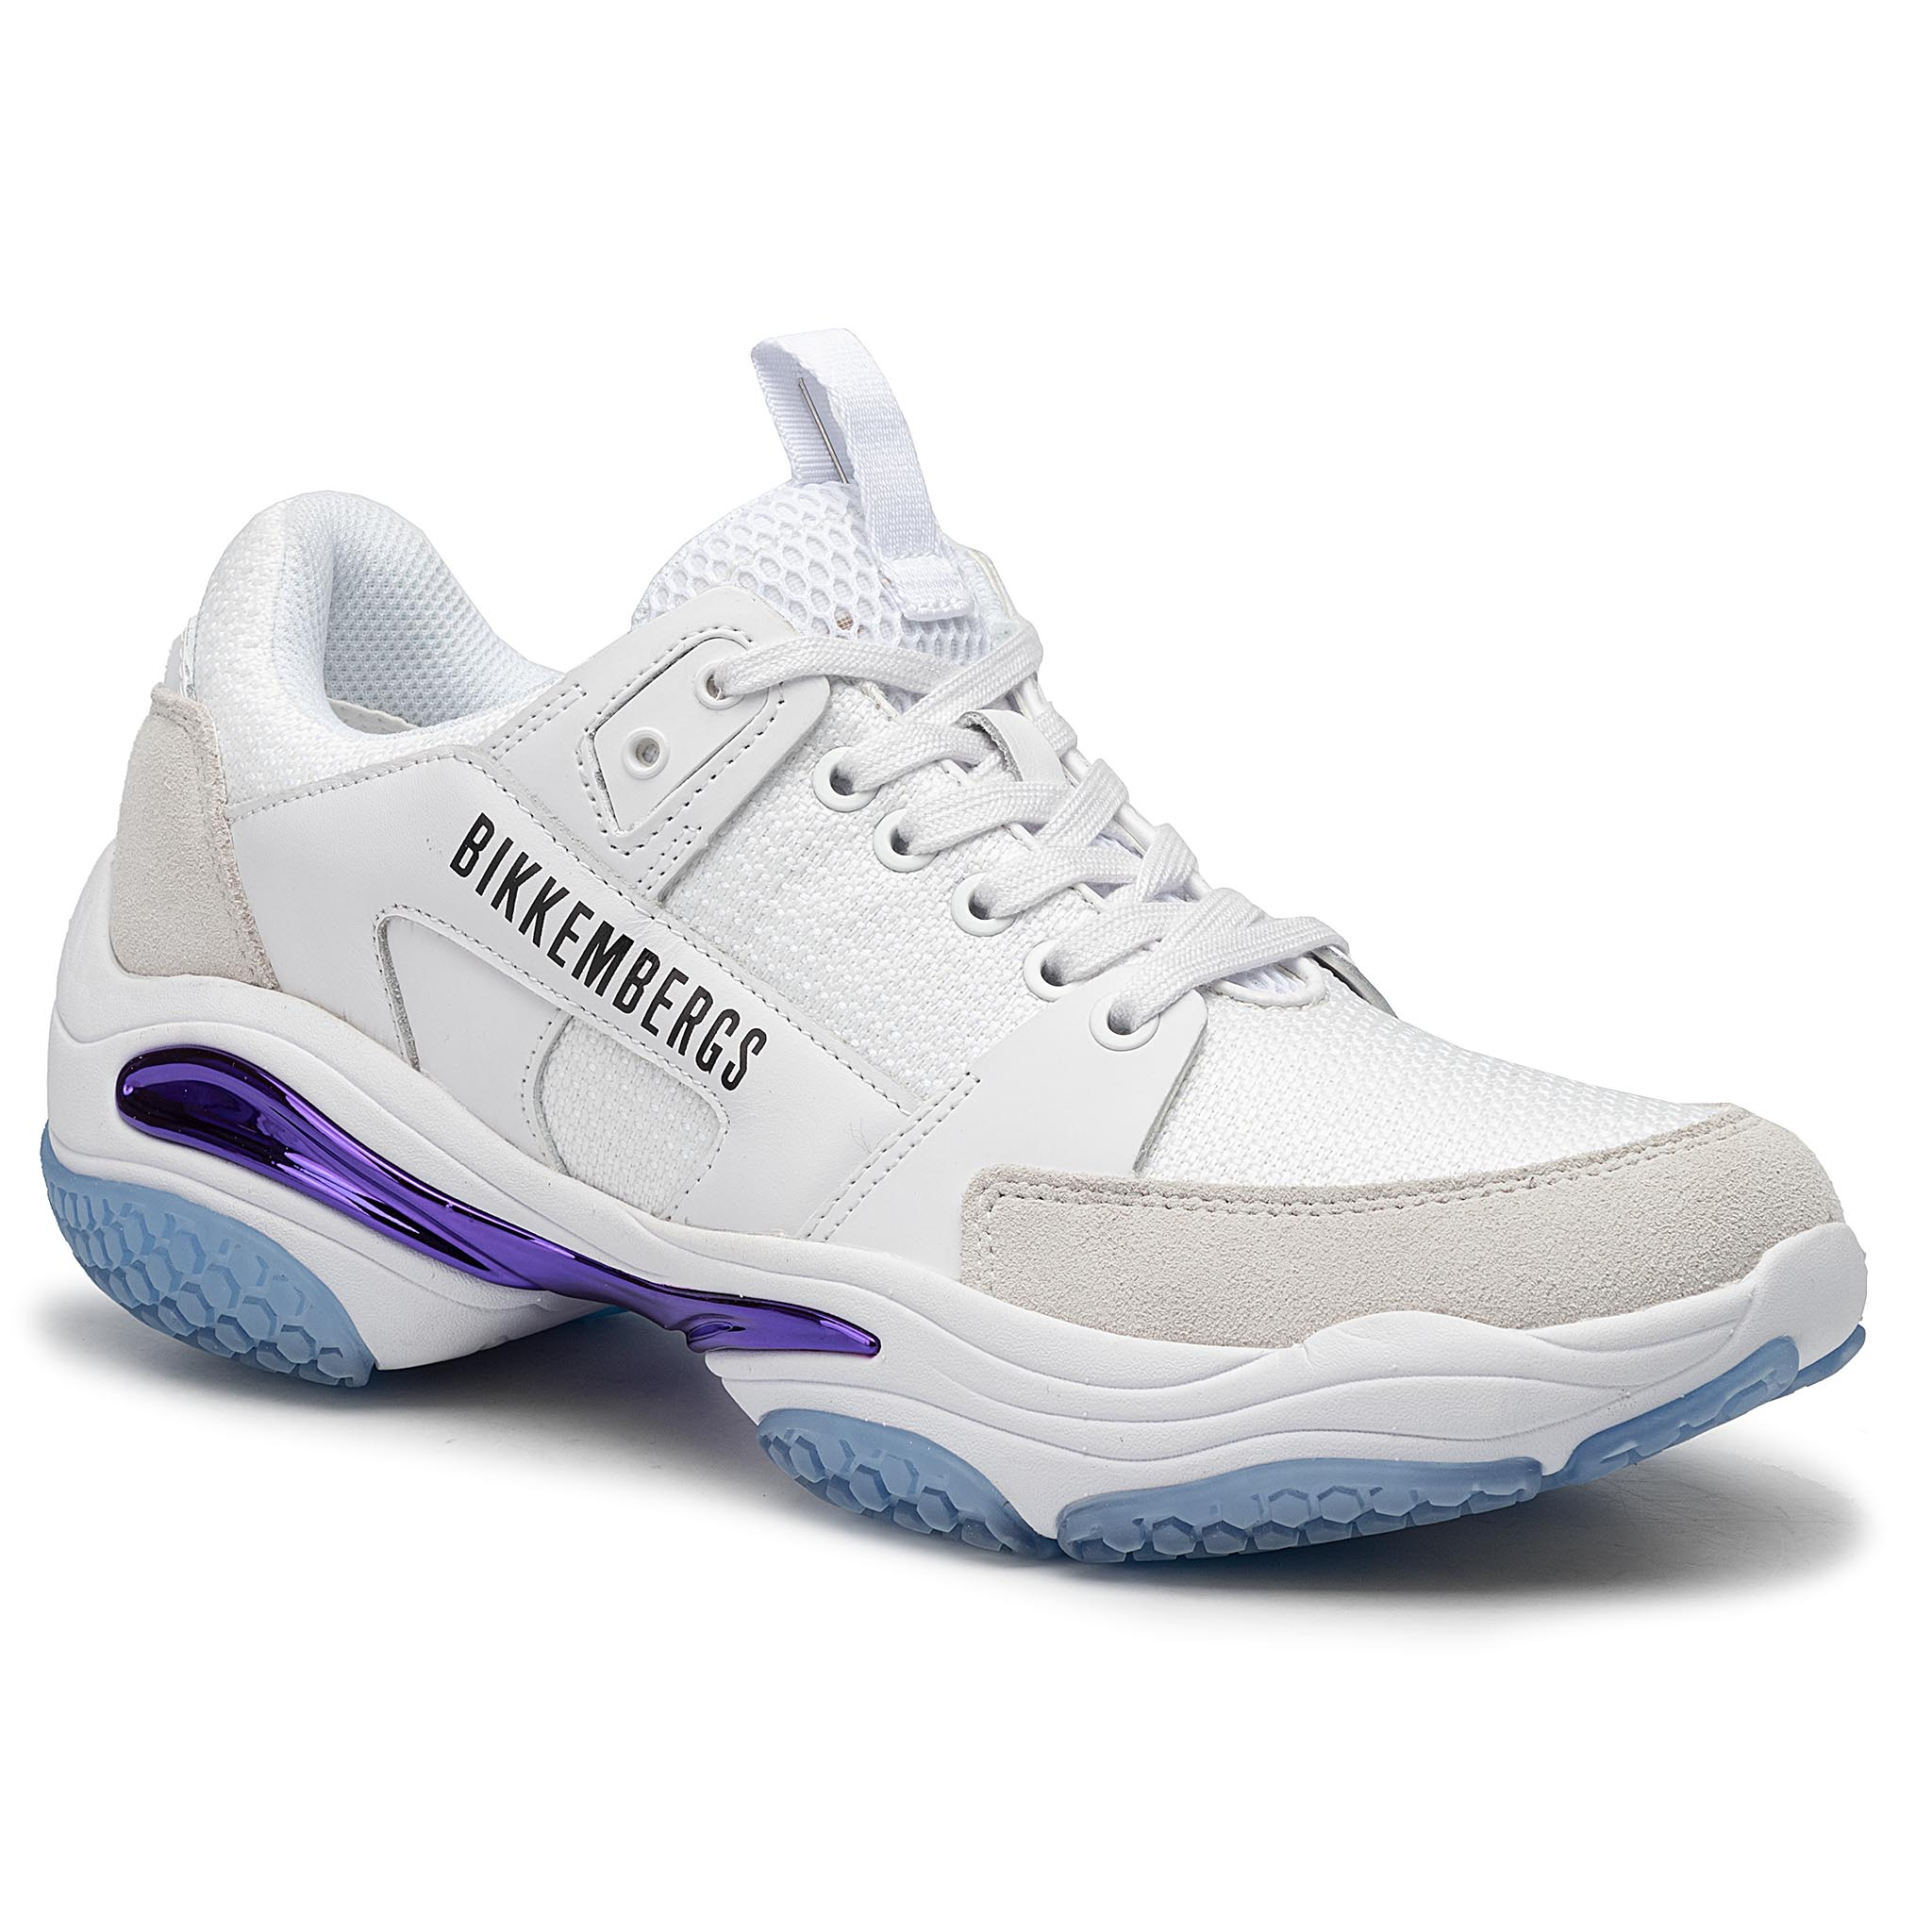 Sneakers BIKKEMBERGS - Low Top Lace Up B4BKM0040 White